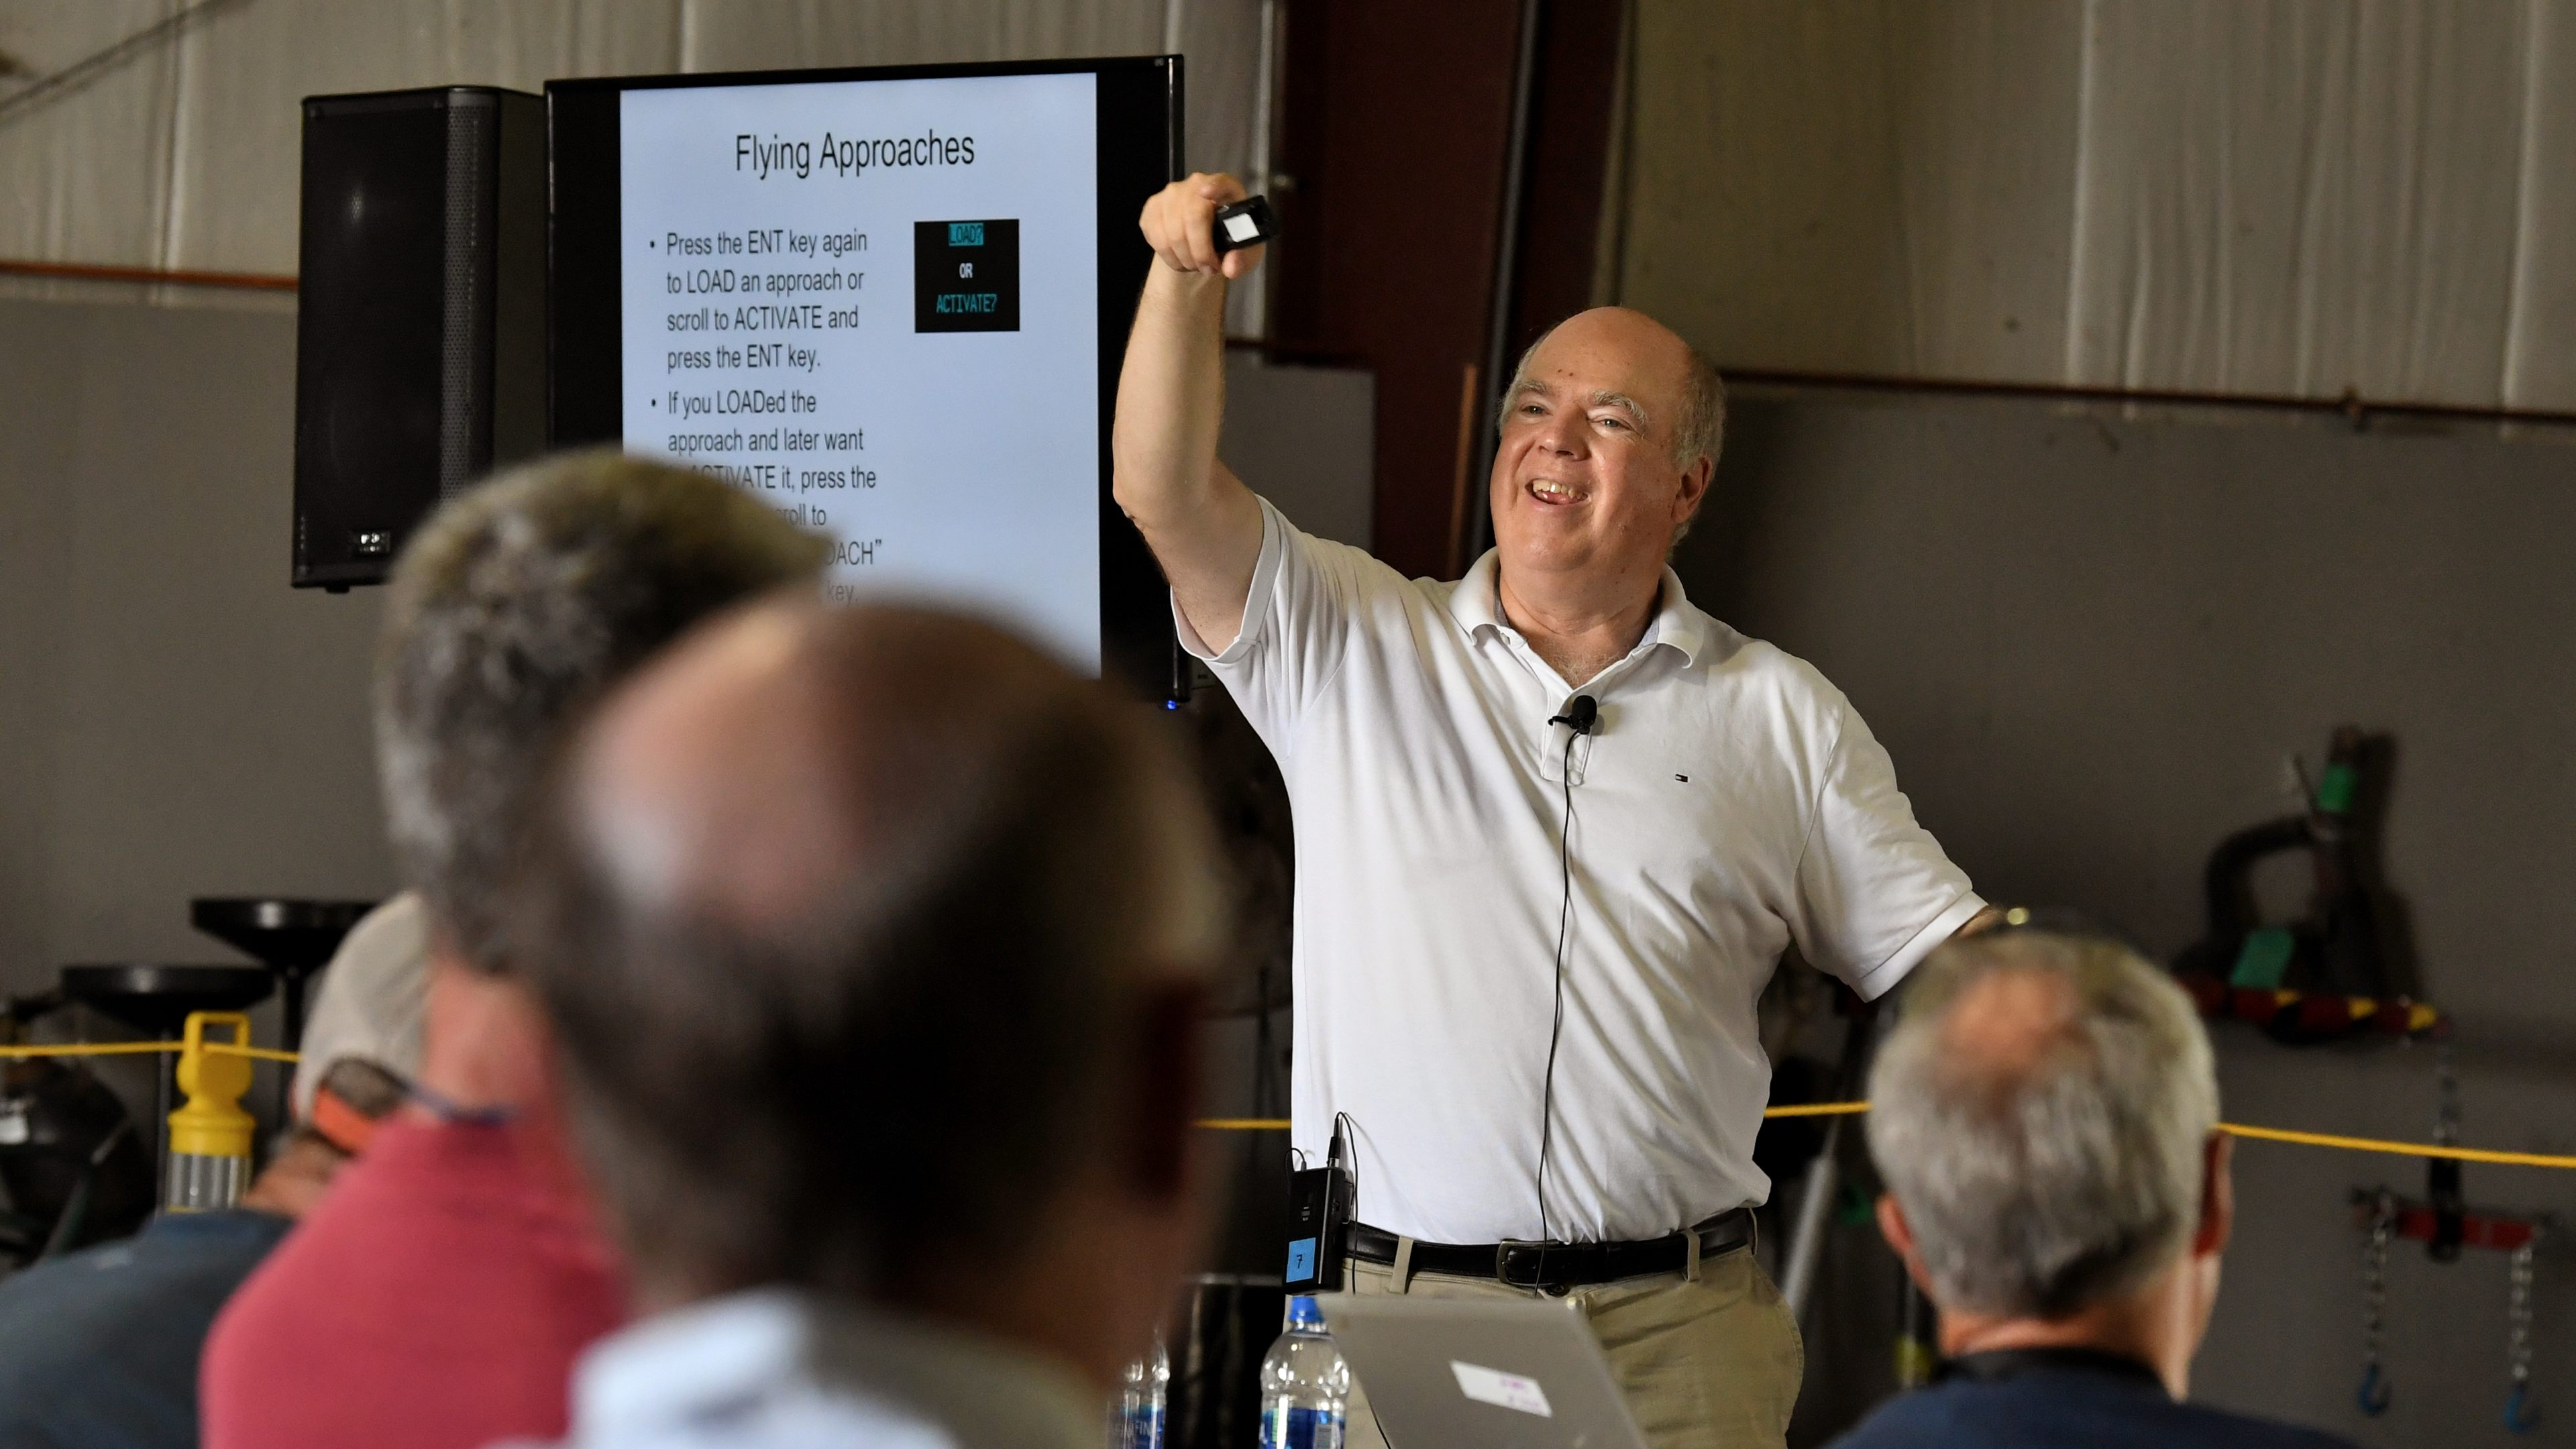 Max Trescott, a professional aviation educator and the 2008 National CFI of the Year, shares tips for advanced IFR flying during a workshop at AOPA's 2018 Carbondale Fly-In. Photo by Mike Collins.